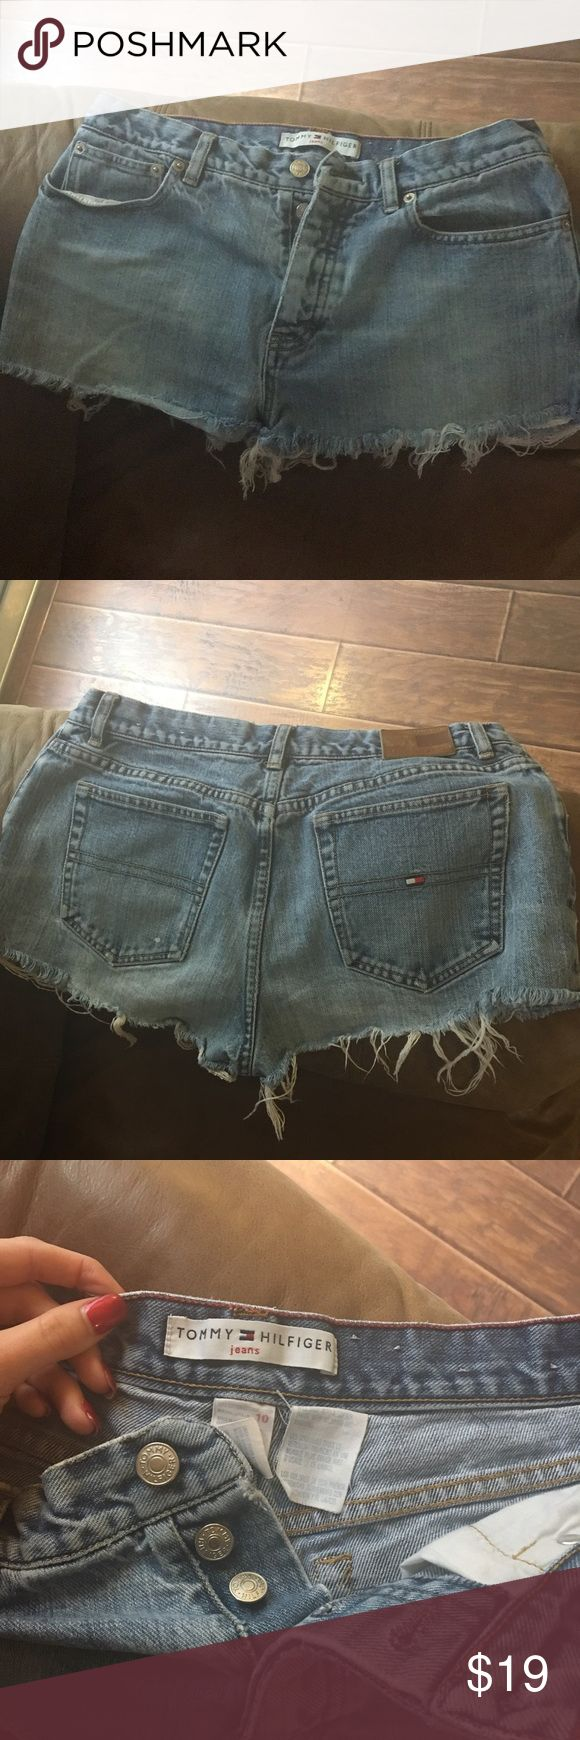 Tommy Hilfiger high-wasted shorts cute, comfy, high waisted, and distressed. Barely worn & in great condition! Size 10 Tommy Hilfiger Shorts Jean Shorts